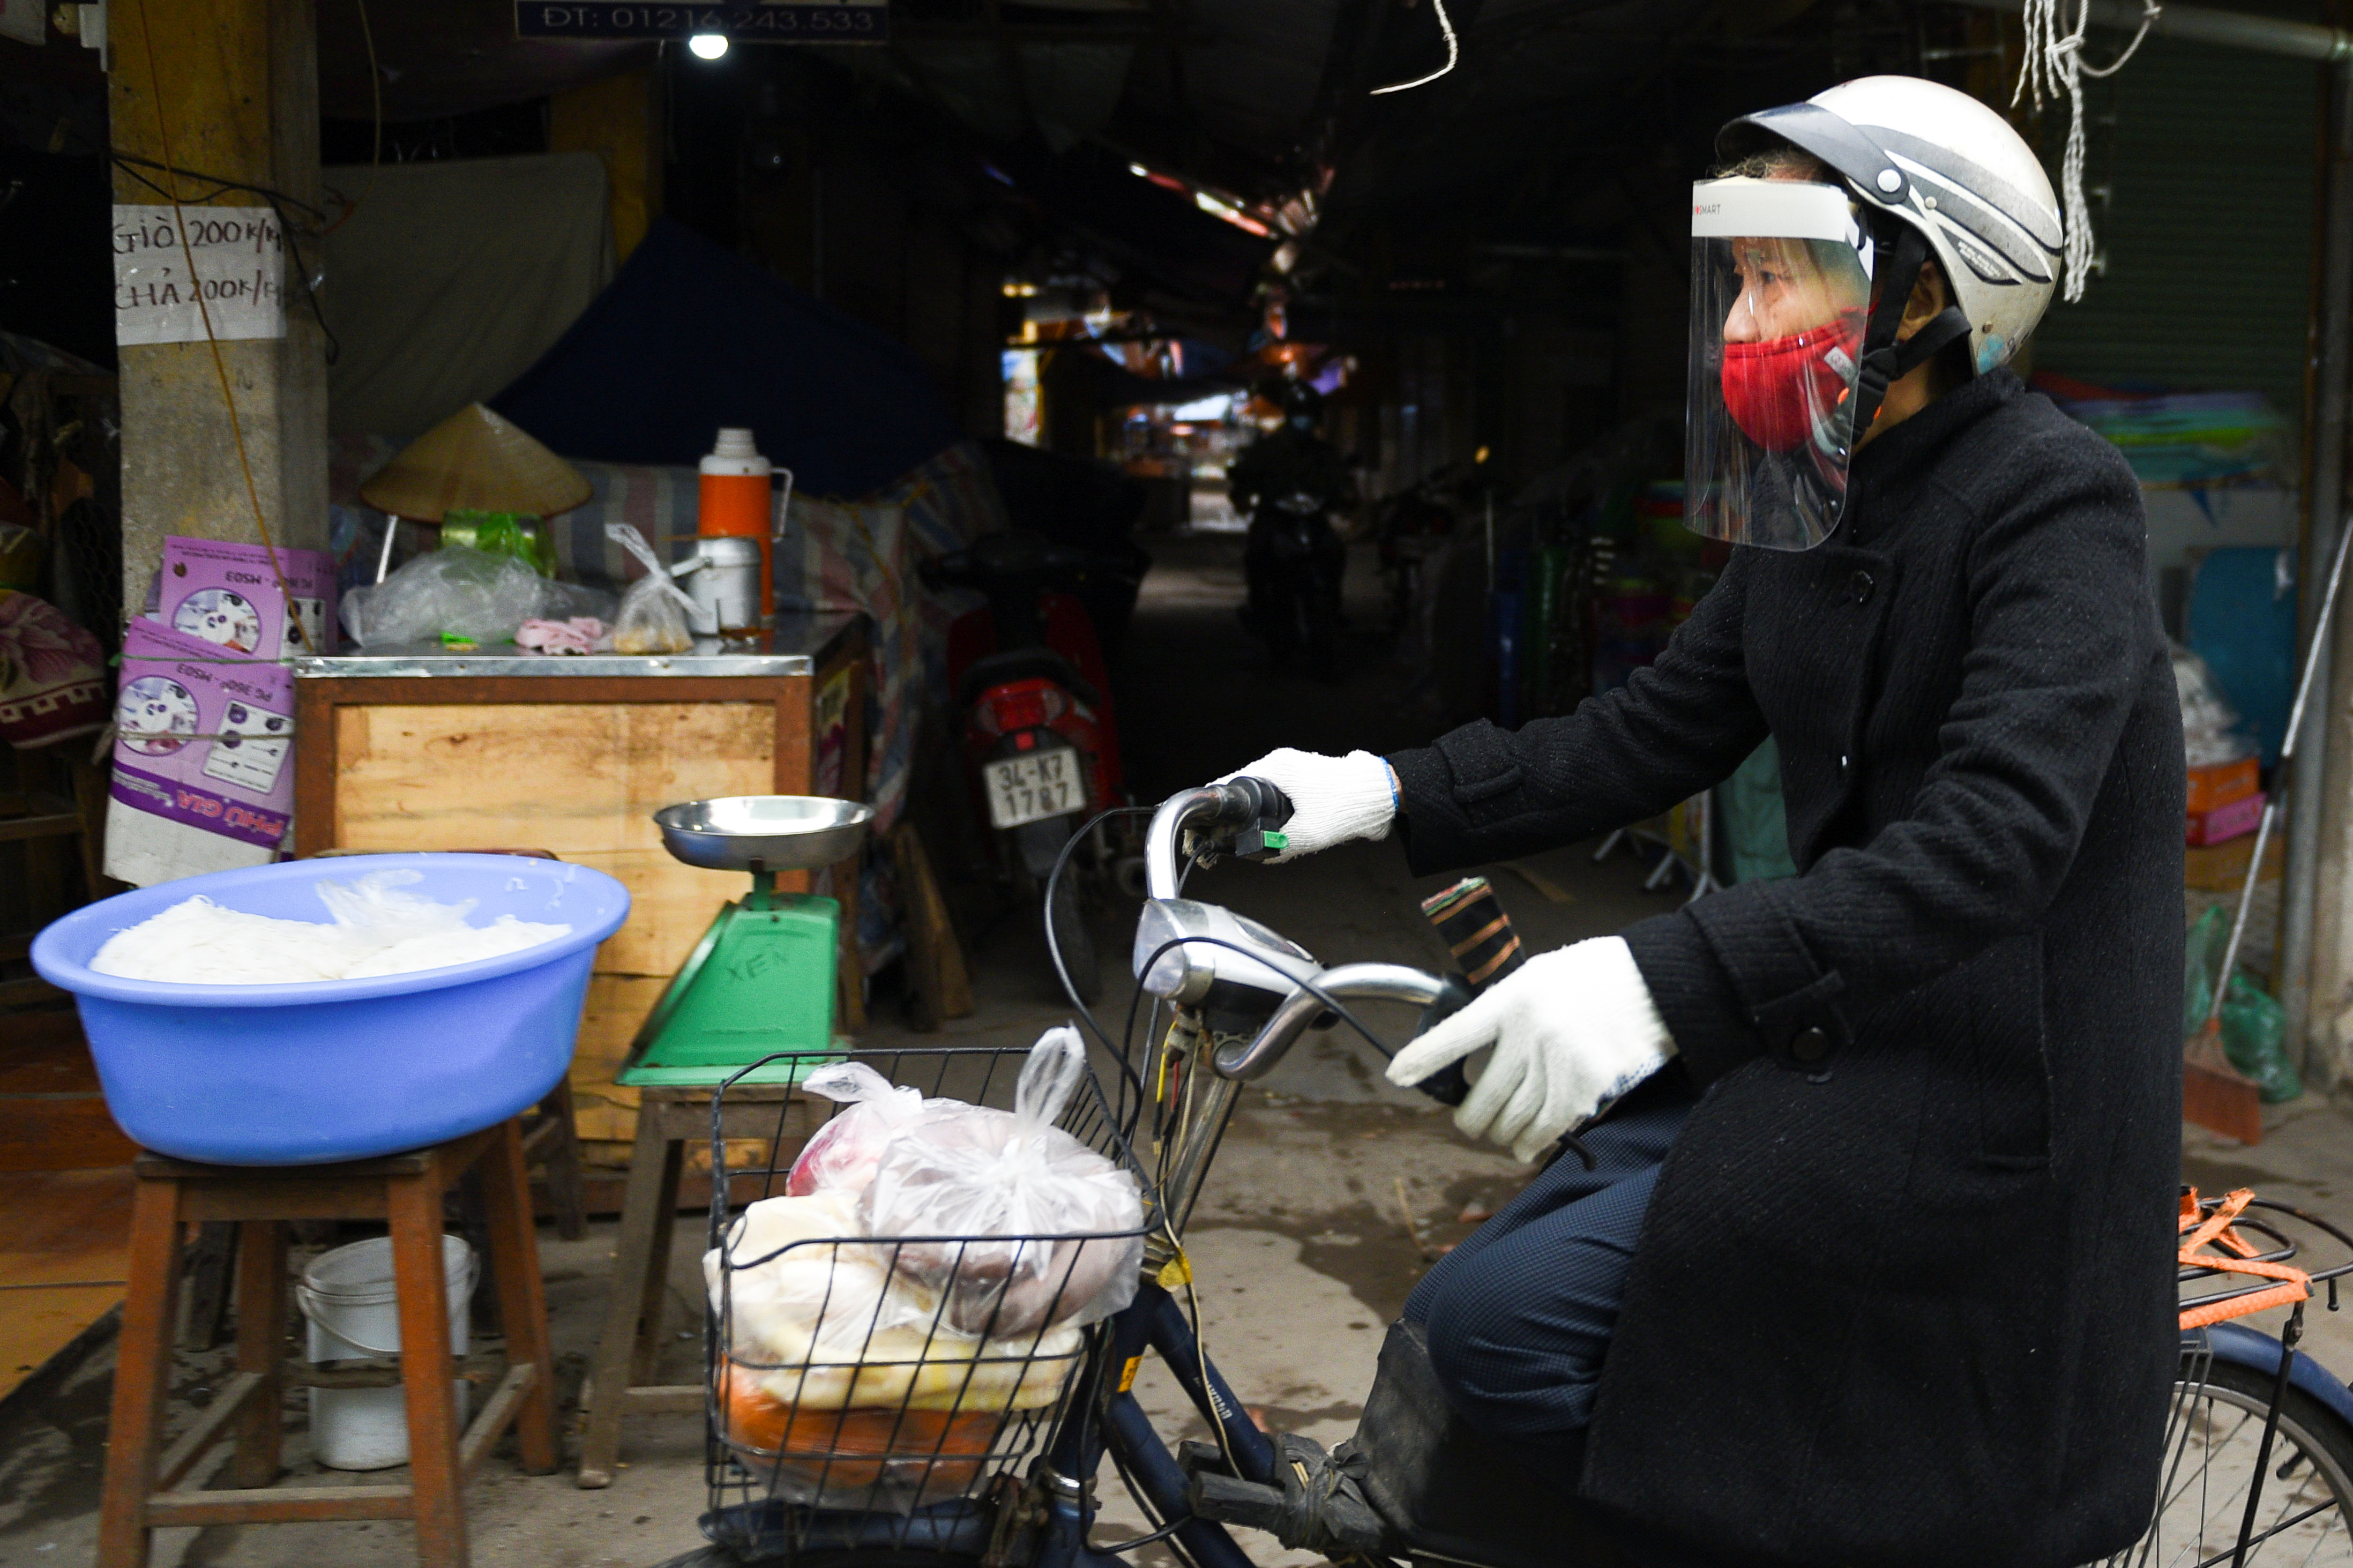 A woman wears a protective mask as she rides a bike at a market after Hai Duong authorities end 34 days of social distancing amid the spread of the coronavirus disease (COVID-19), in Chi Linh city, Hai Duong province, Vietnam, March 3, 2021. REUTERS/Thanh Hue